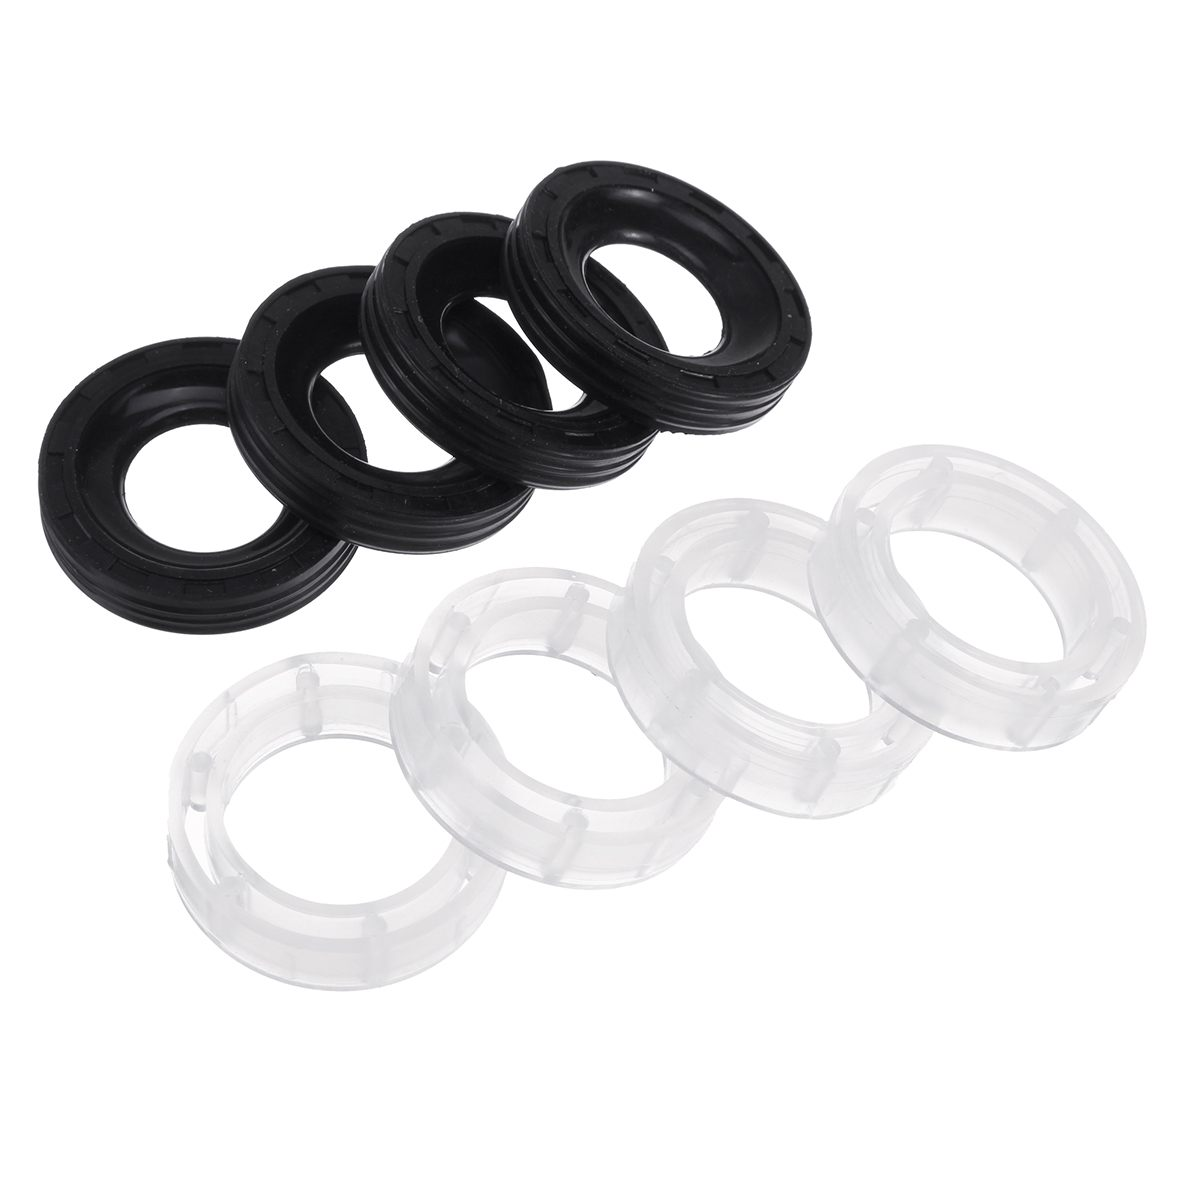 Peugeot 307 SW 1.6 HDi 2004-on  4x New Fuel Injector Seal Washer Oring Kit Set